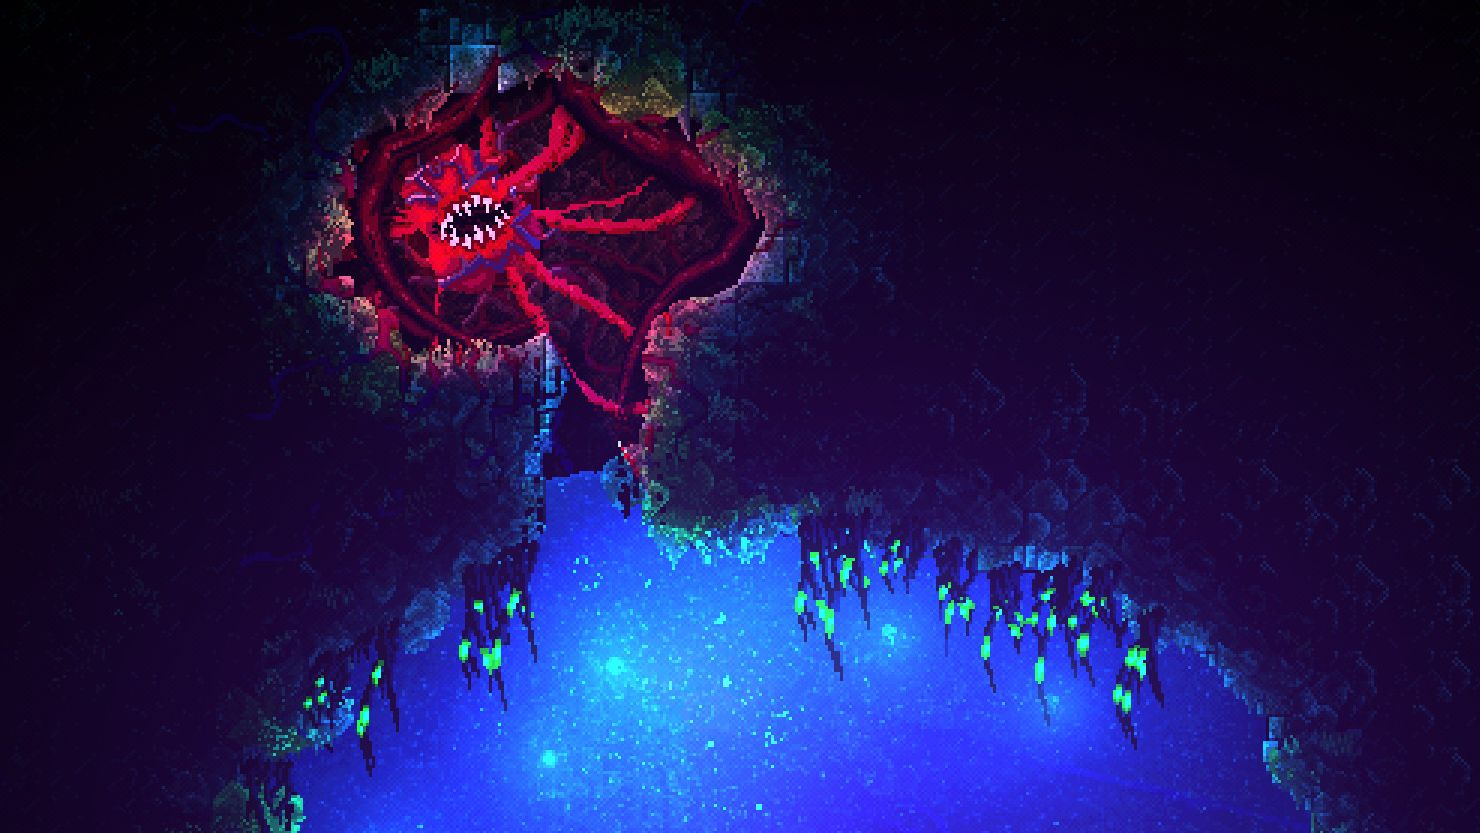 A screenshot from Carrion showing a 2D view of a cave. A square creature with a meaty texture is strung up in the corner with tendrils of its own flesh.